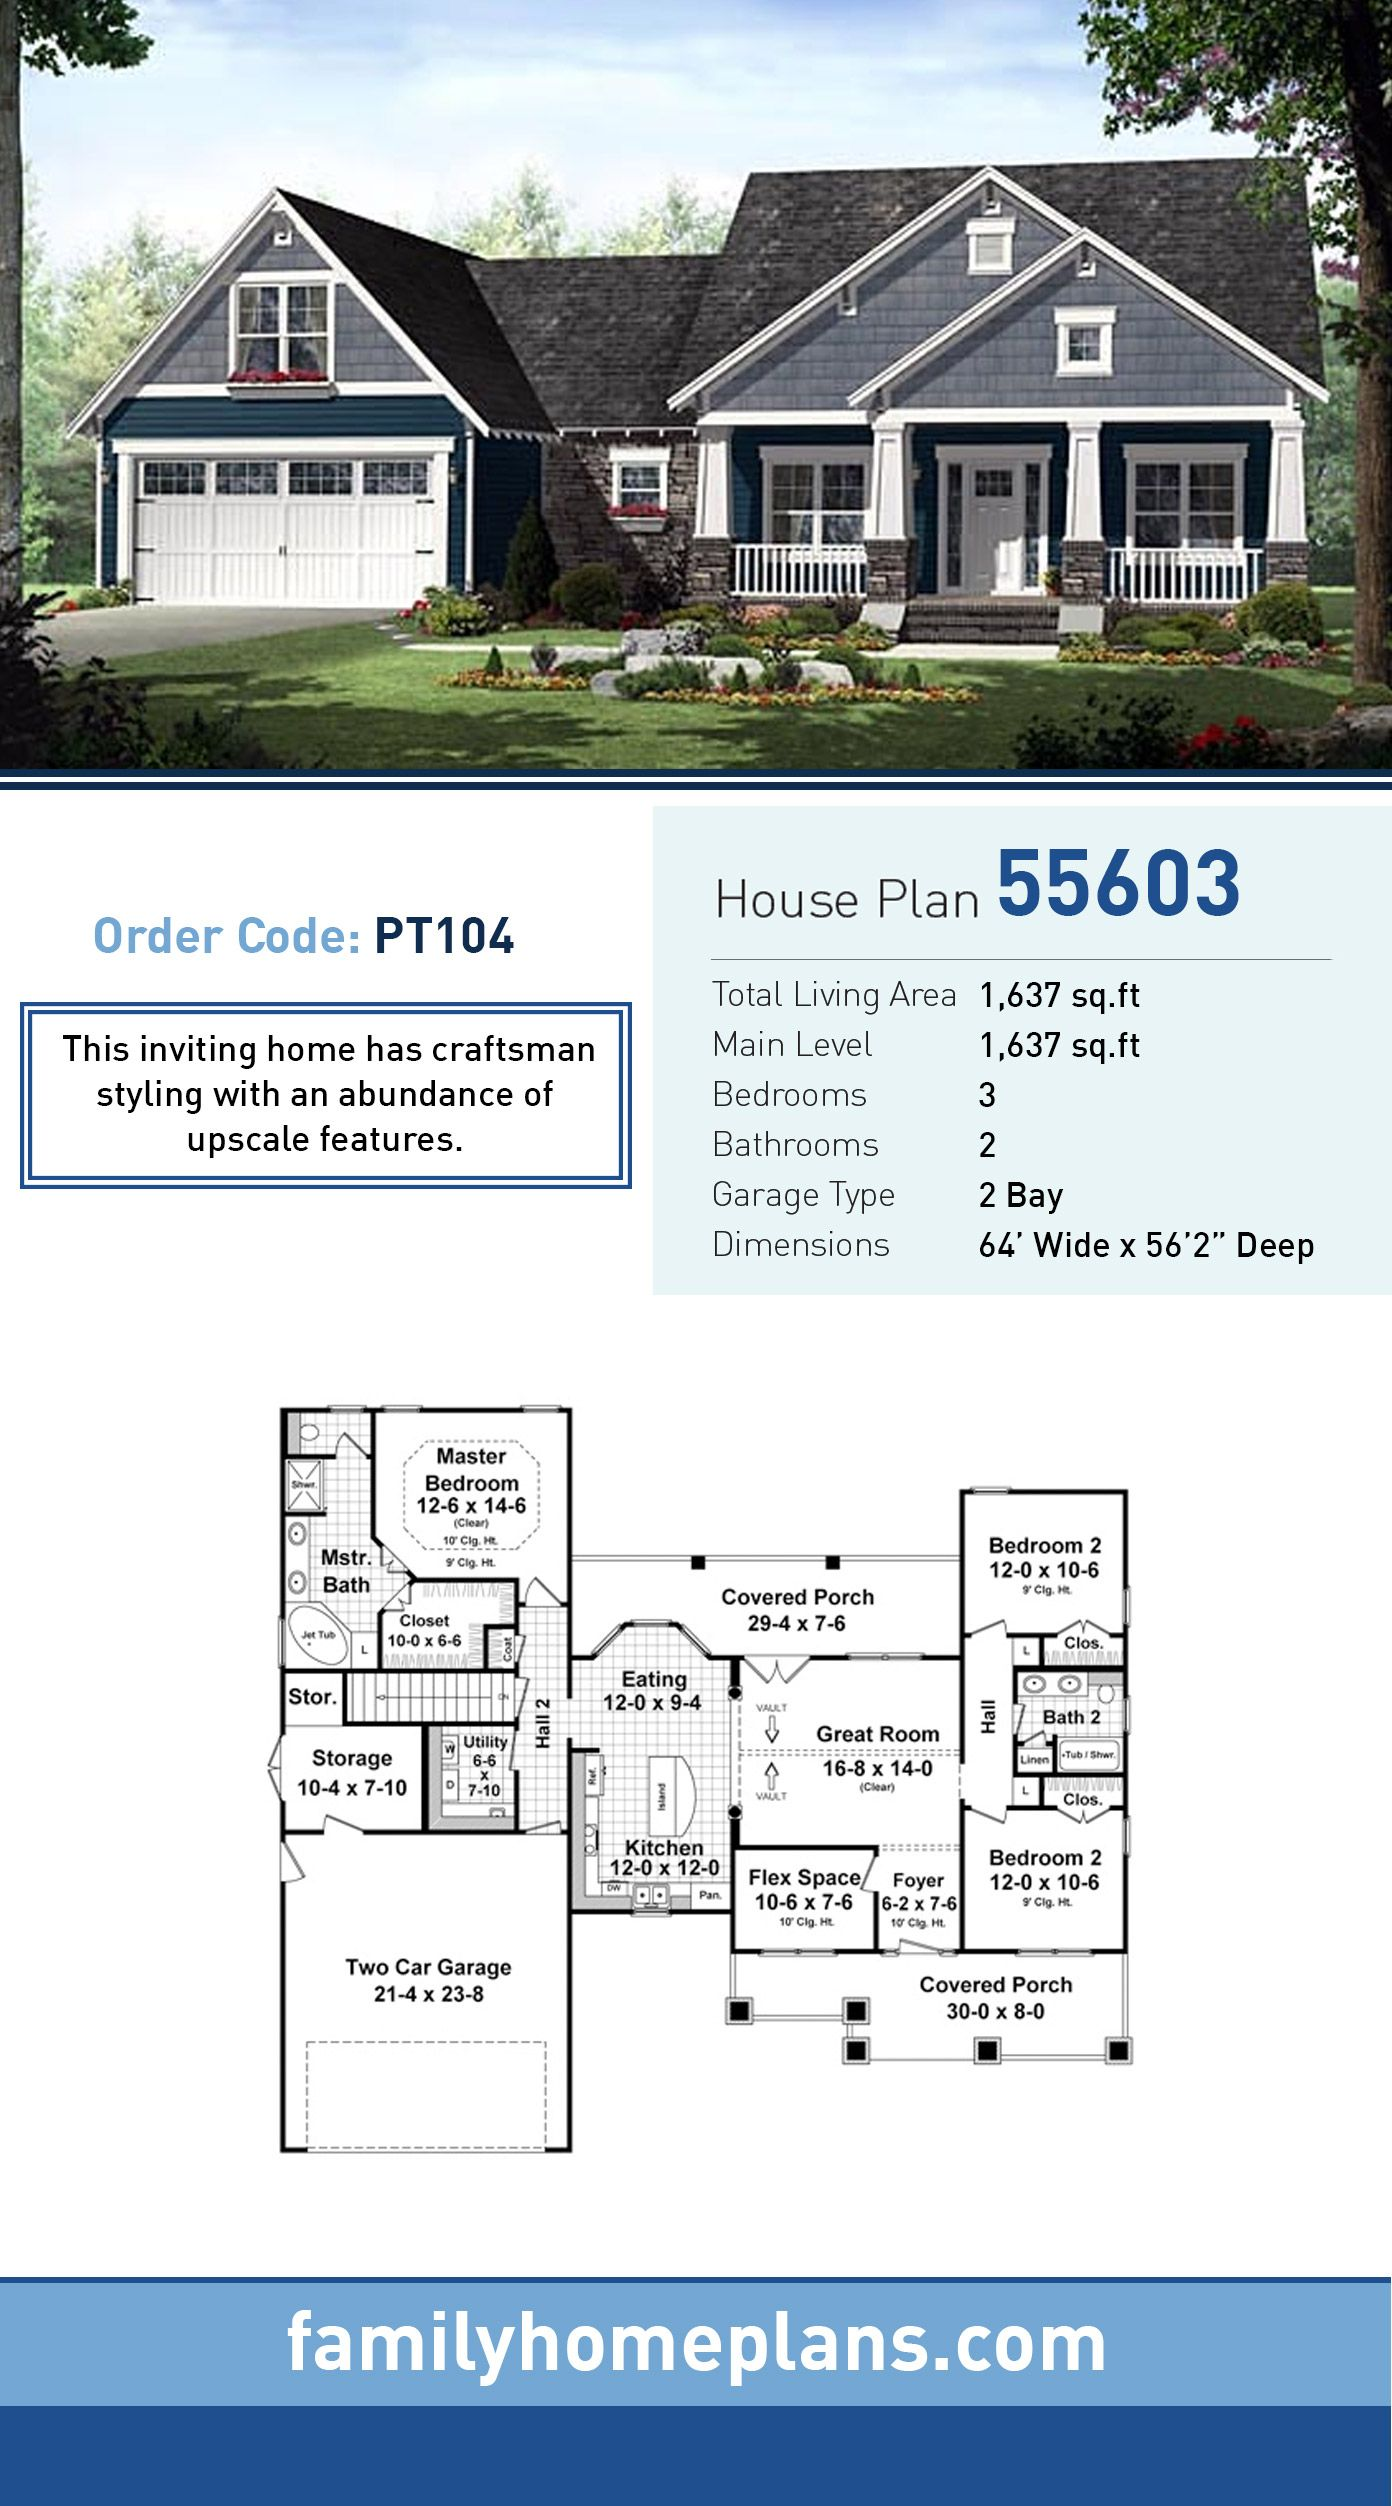 Cottage Style House Plan Number 55603 with 3 Bed, 2 Bath, 2 Car Garage #craftsmanstylehomes